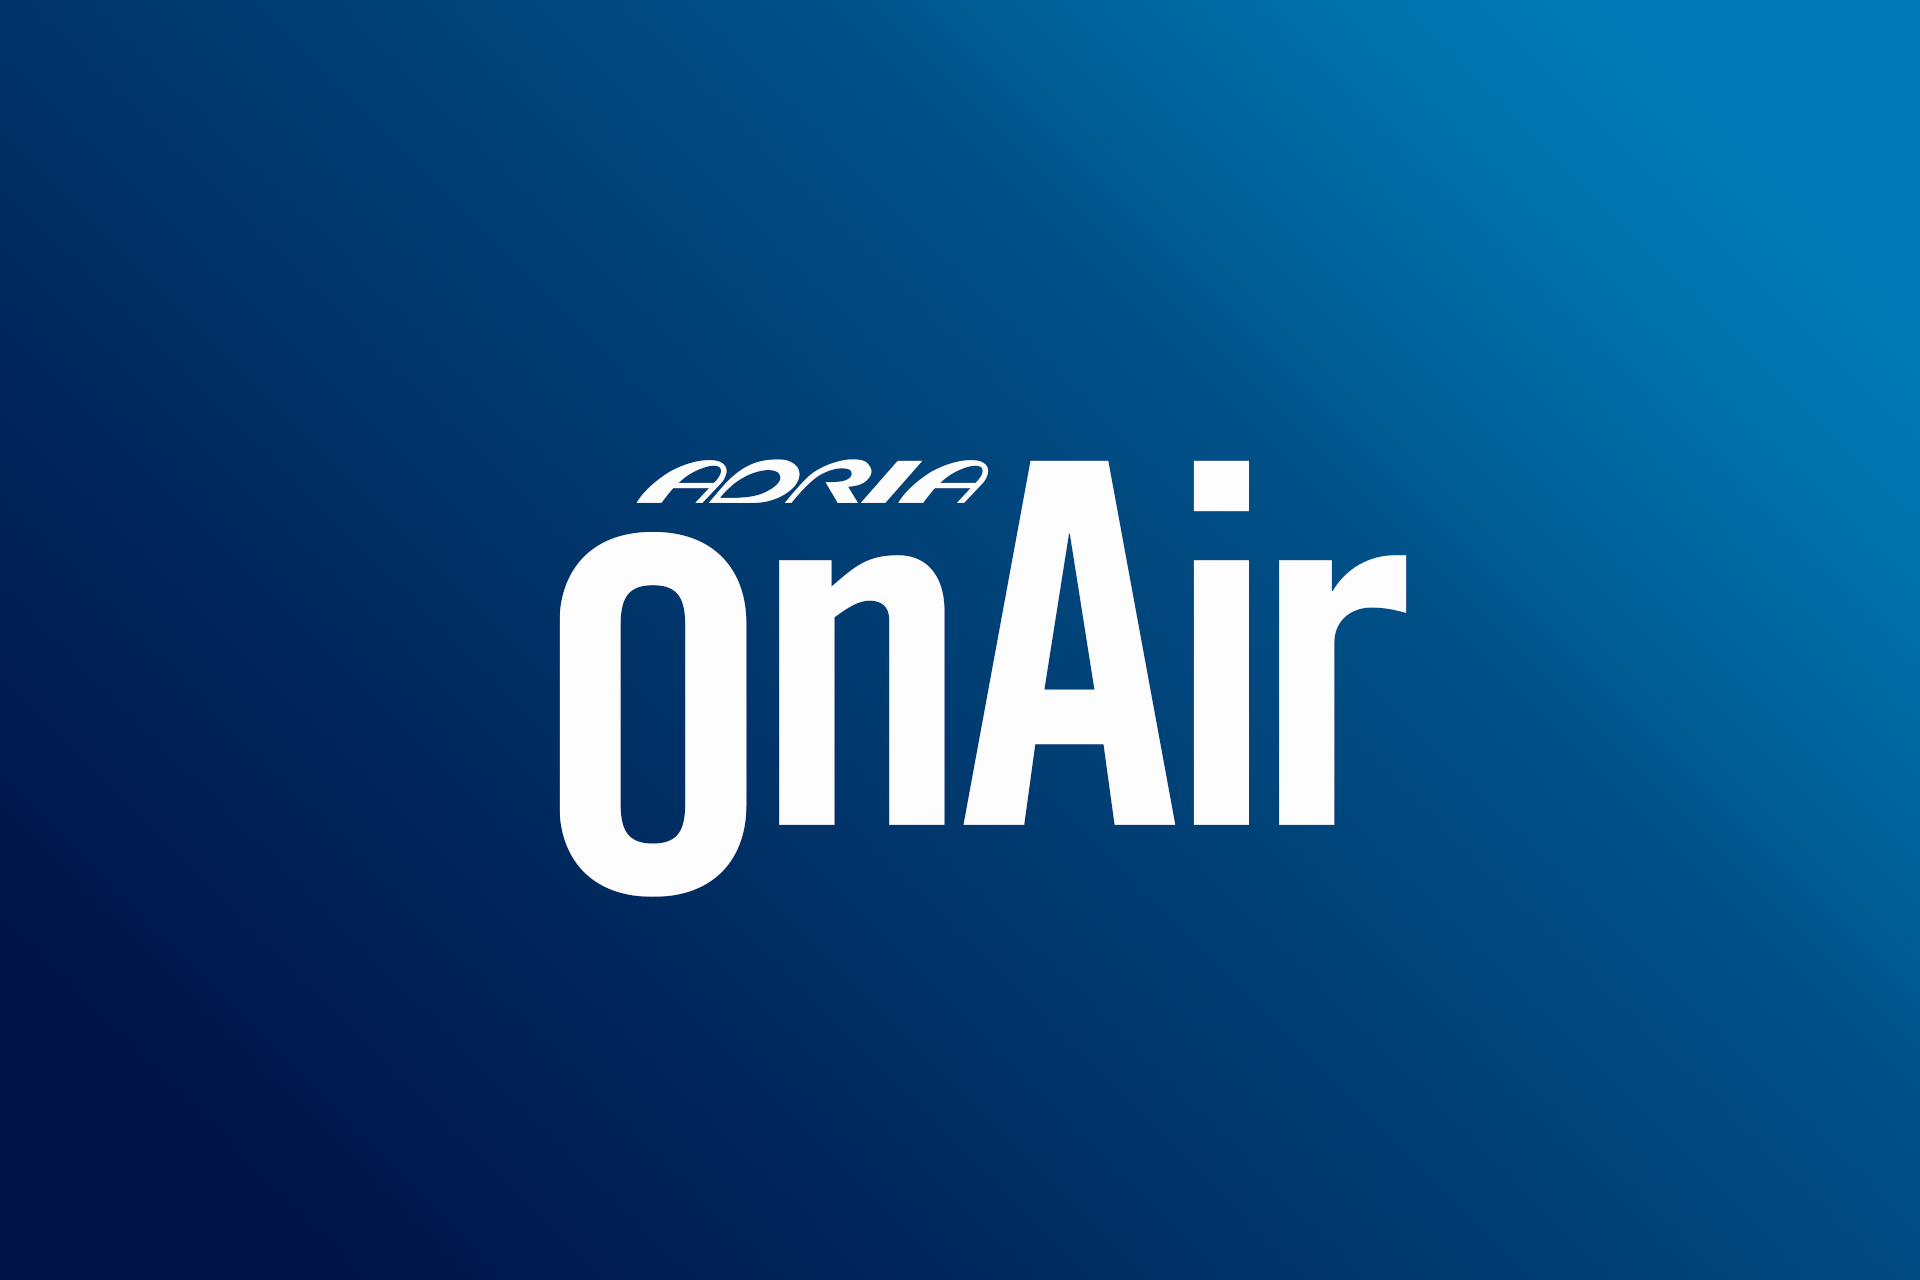 Adria OnAir logotip